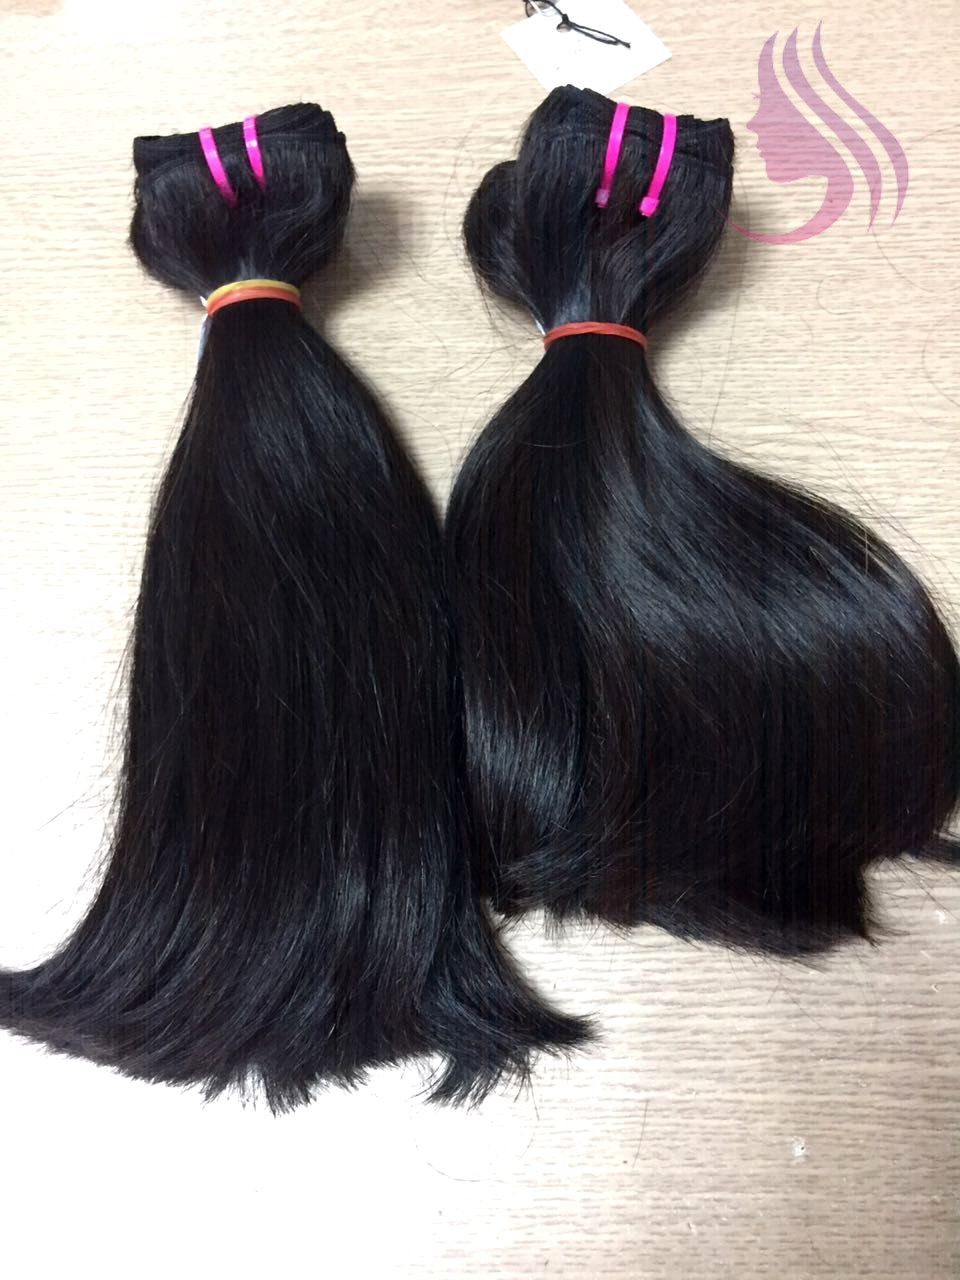 8 inch hair extensions